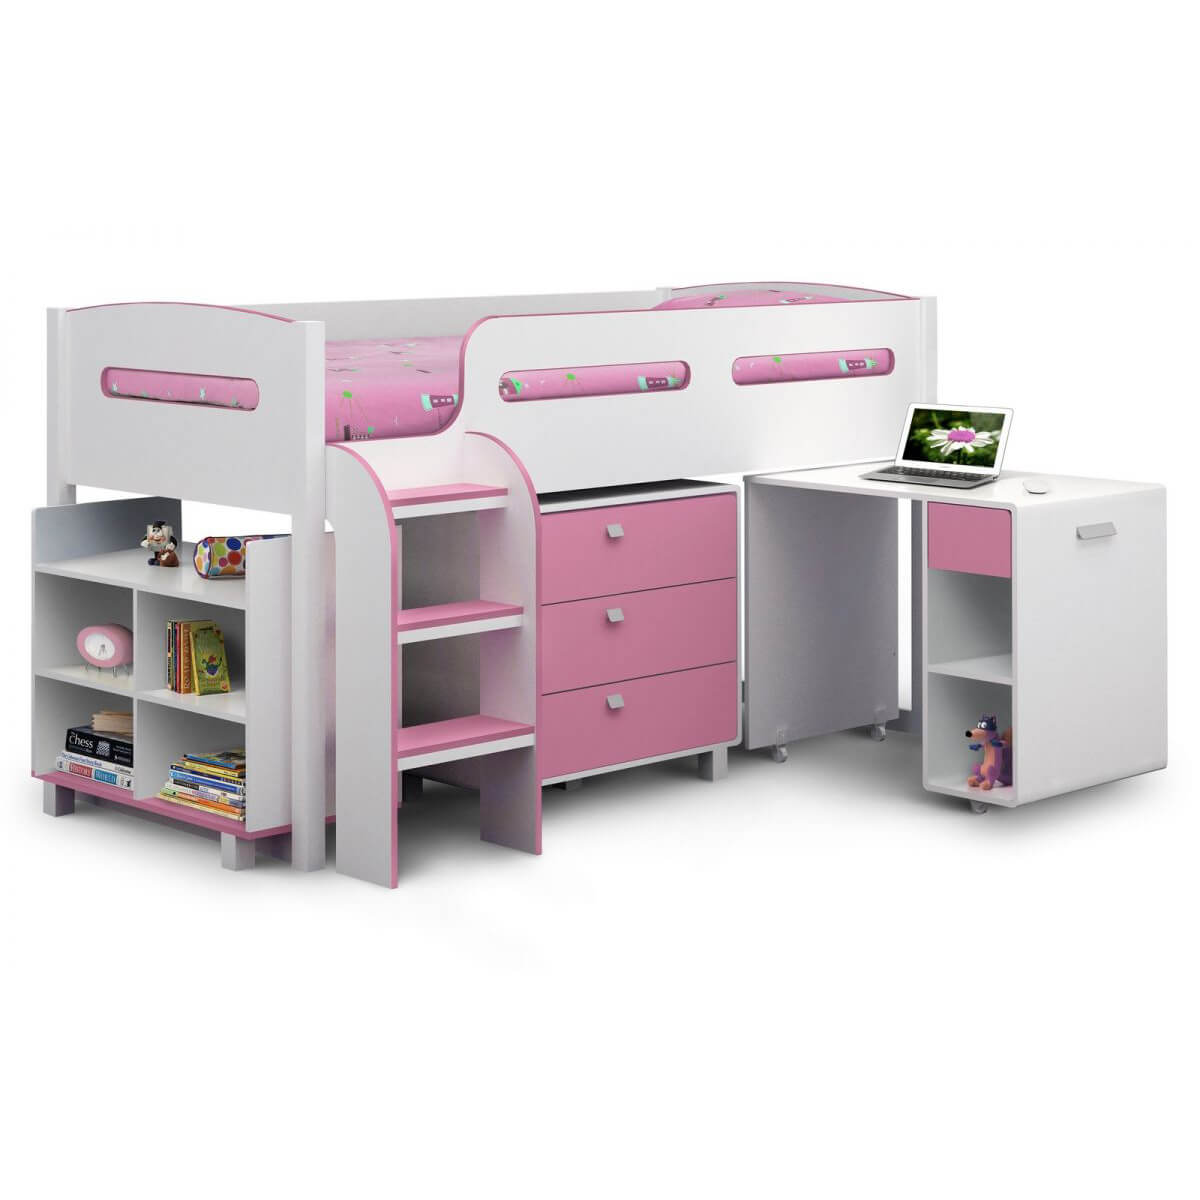 Kiddo Single Cabin Bed With Storage Pink and White